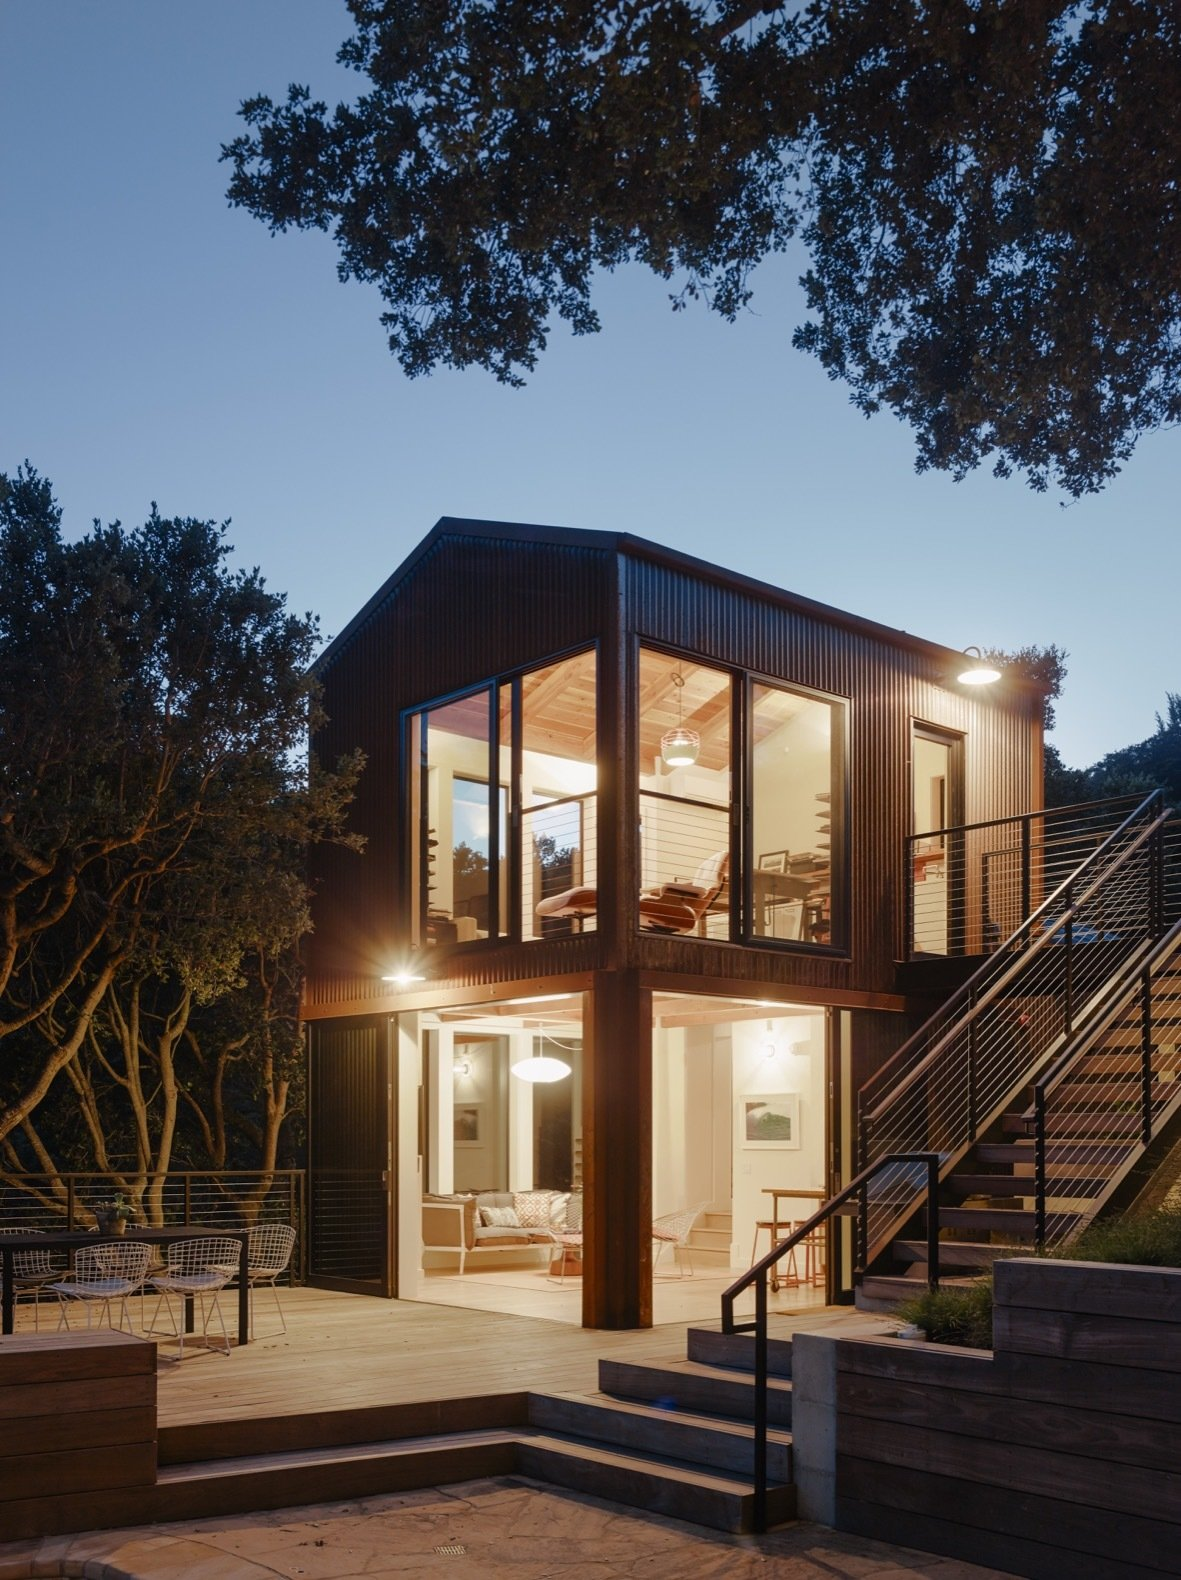 Portola Valley House annex exterior at night